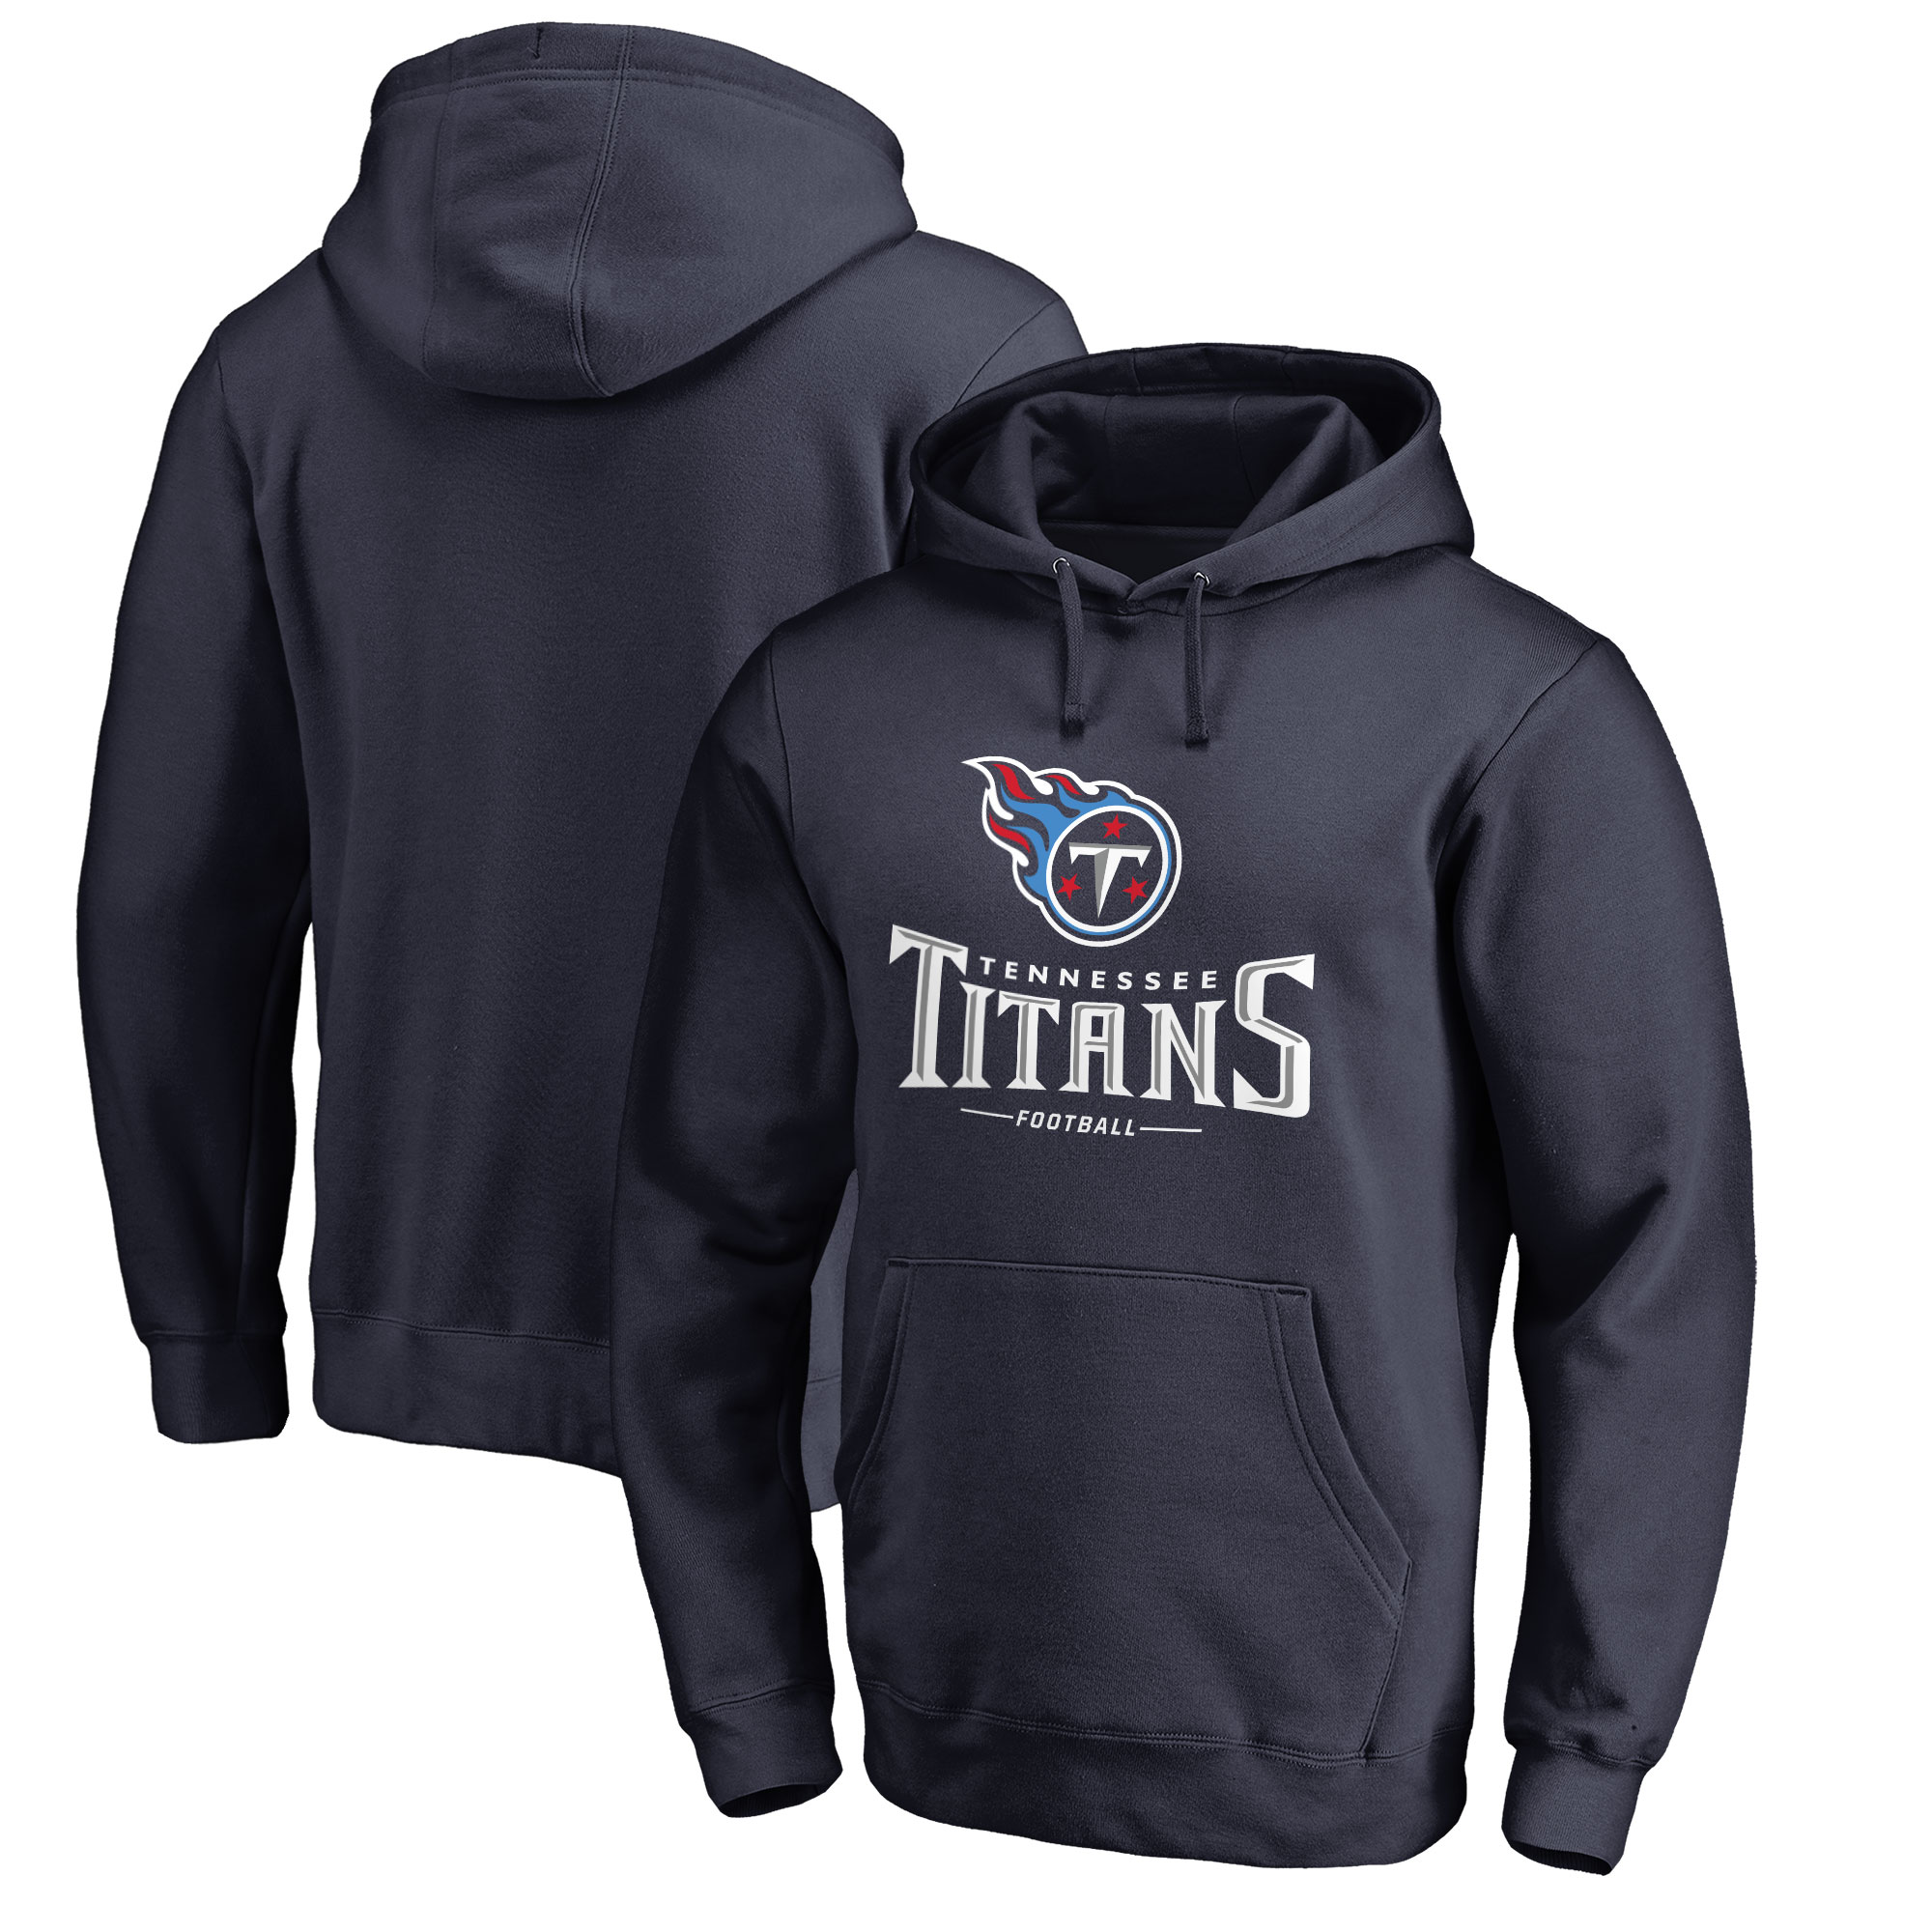 Tennessee Titans NFL Pro Line by Fanatics Branded Team Lockup Pullover Hoodie - Navy